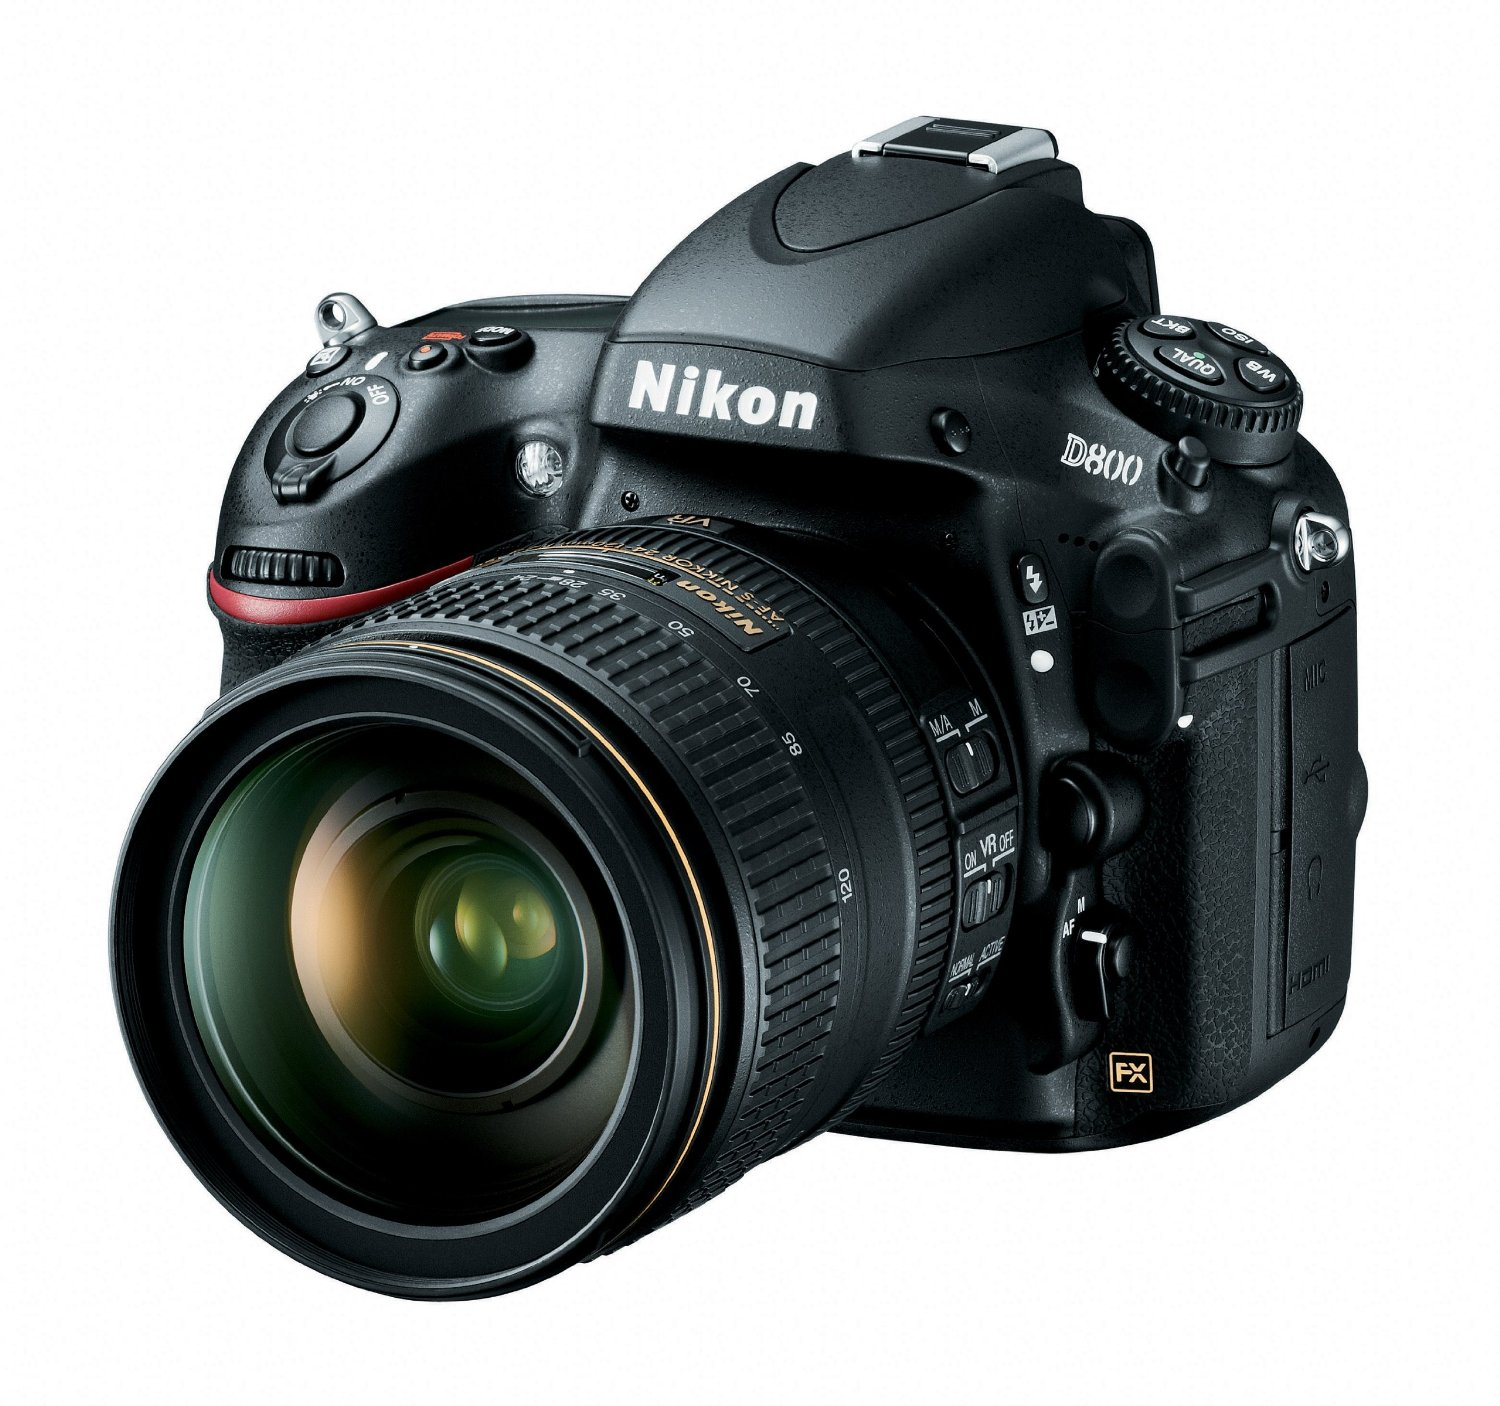 Nikon D800 36.3 MP Digital SLR Camera